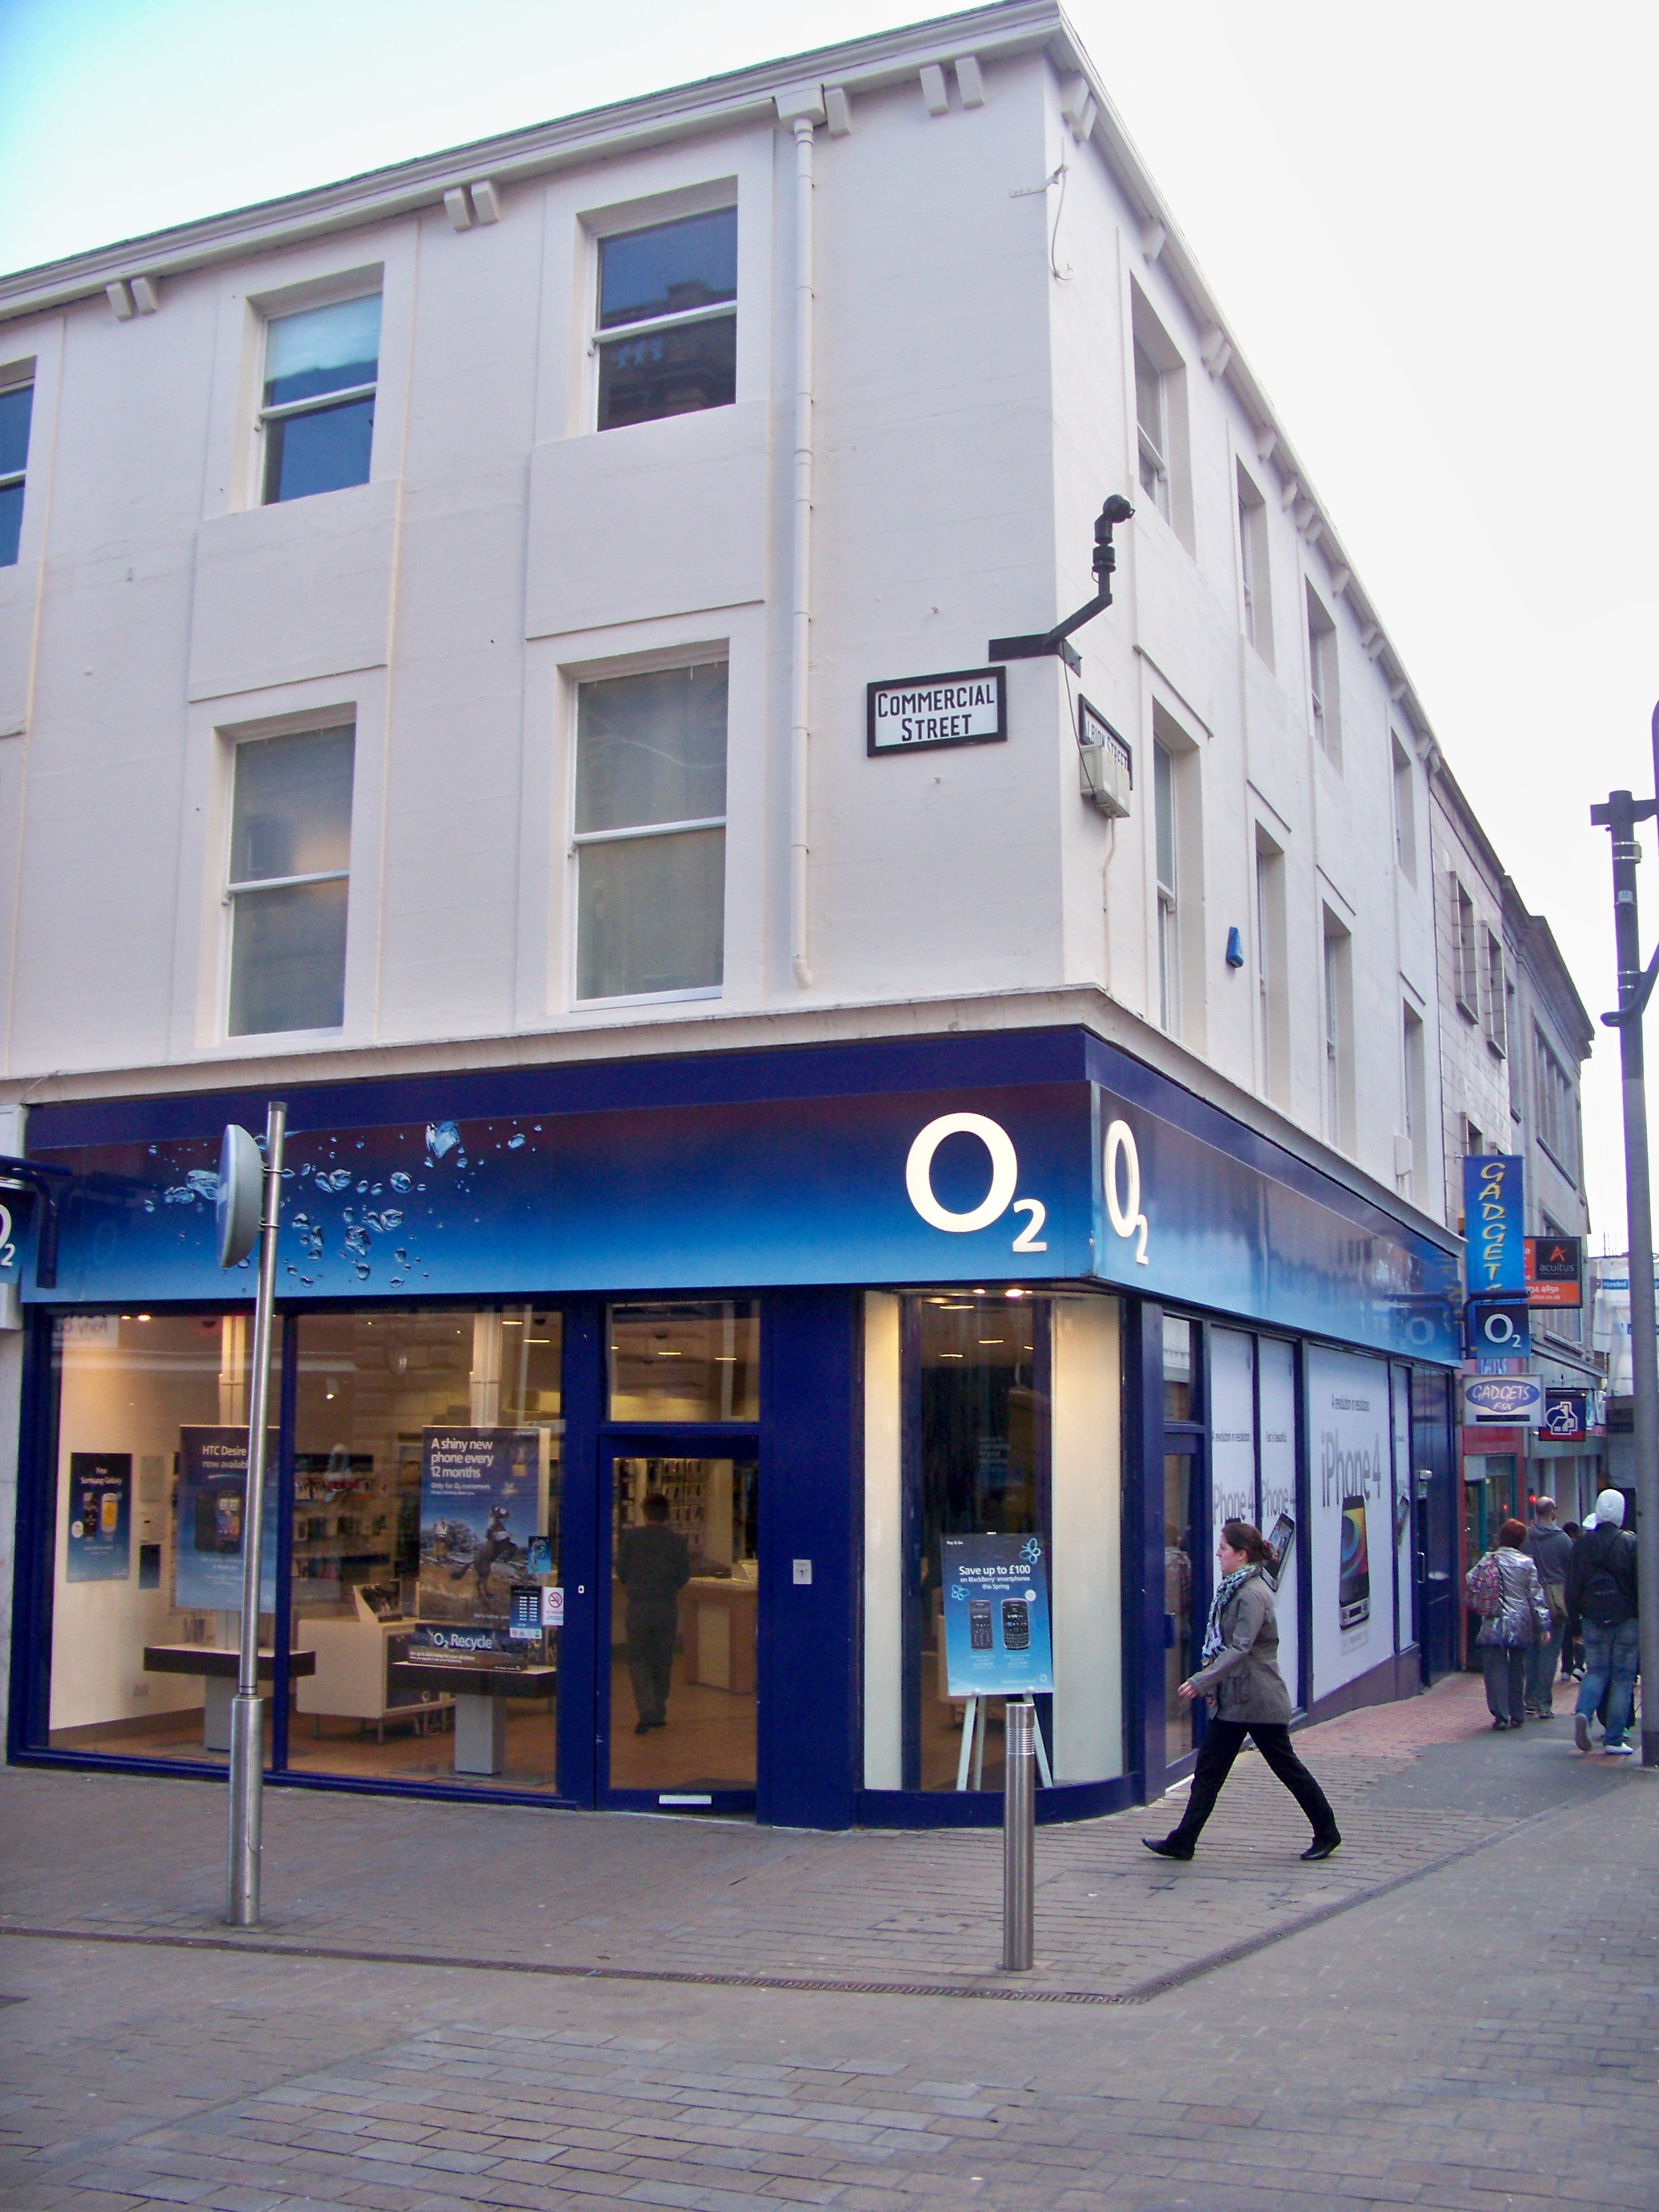 O2 Shop Altona : file o2 shop on the junction of commercial street and ~ Watch28wear.com Haus und Dekorationen